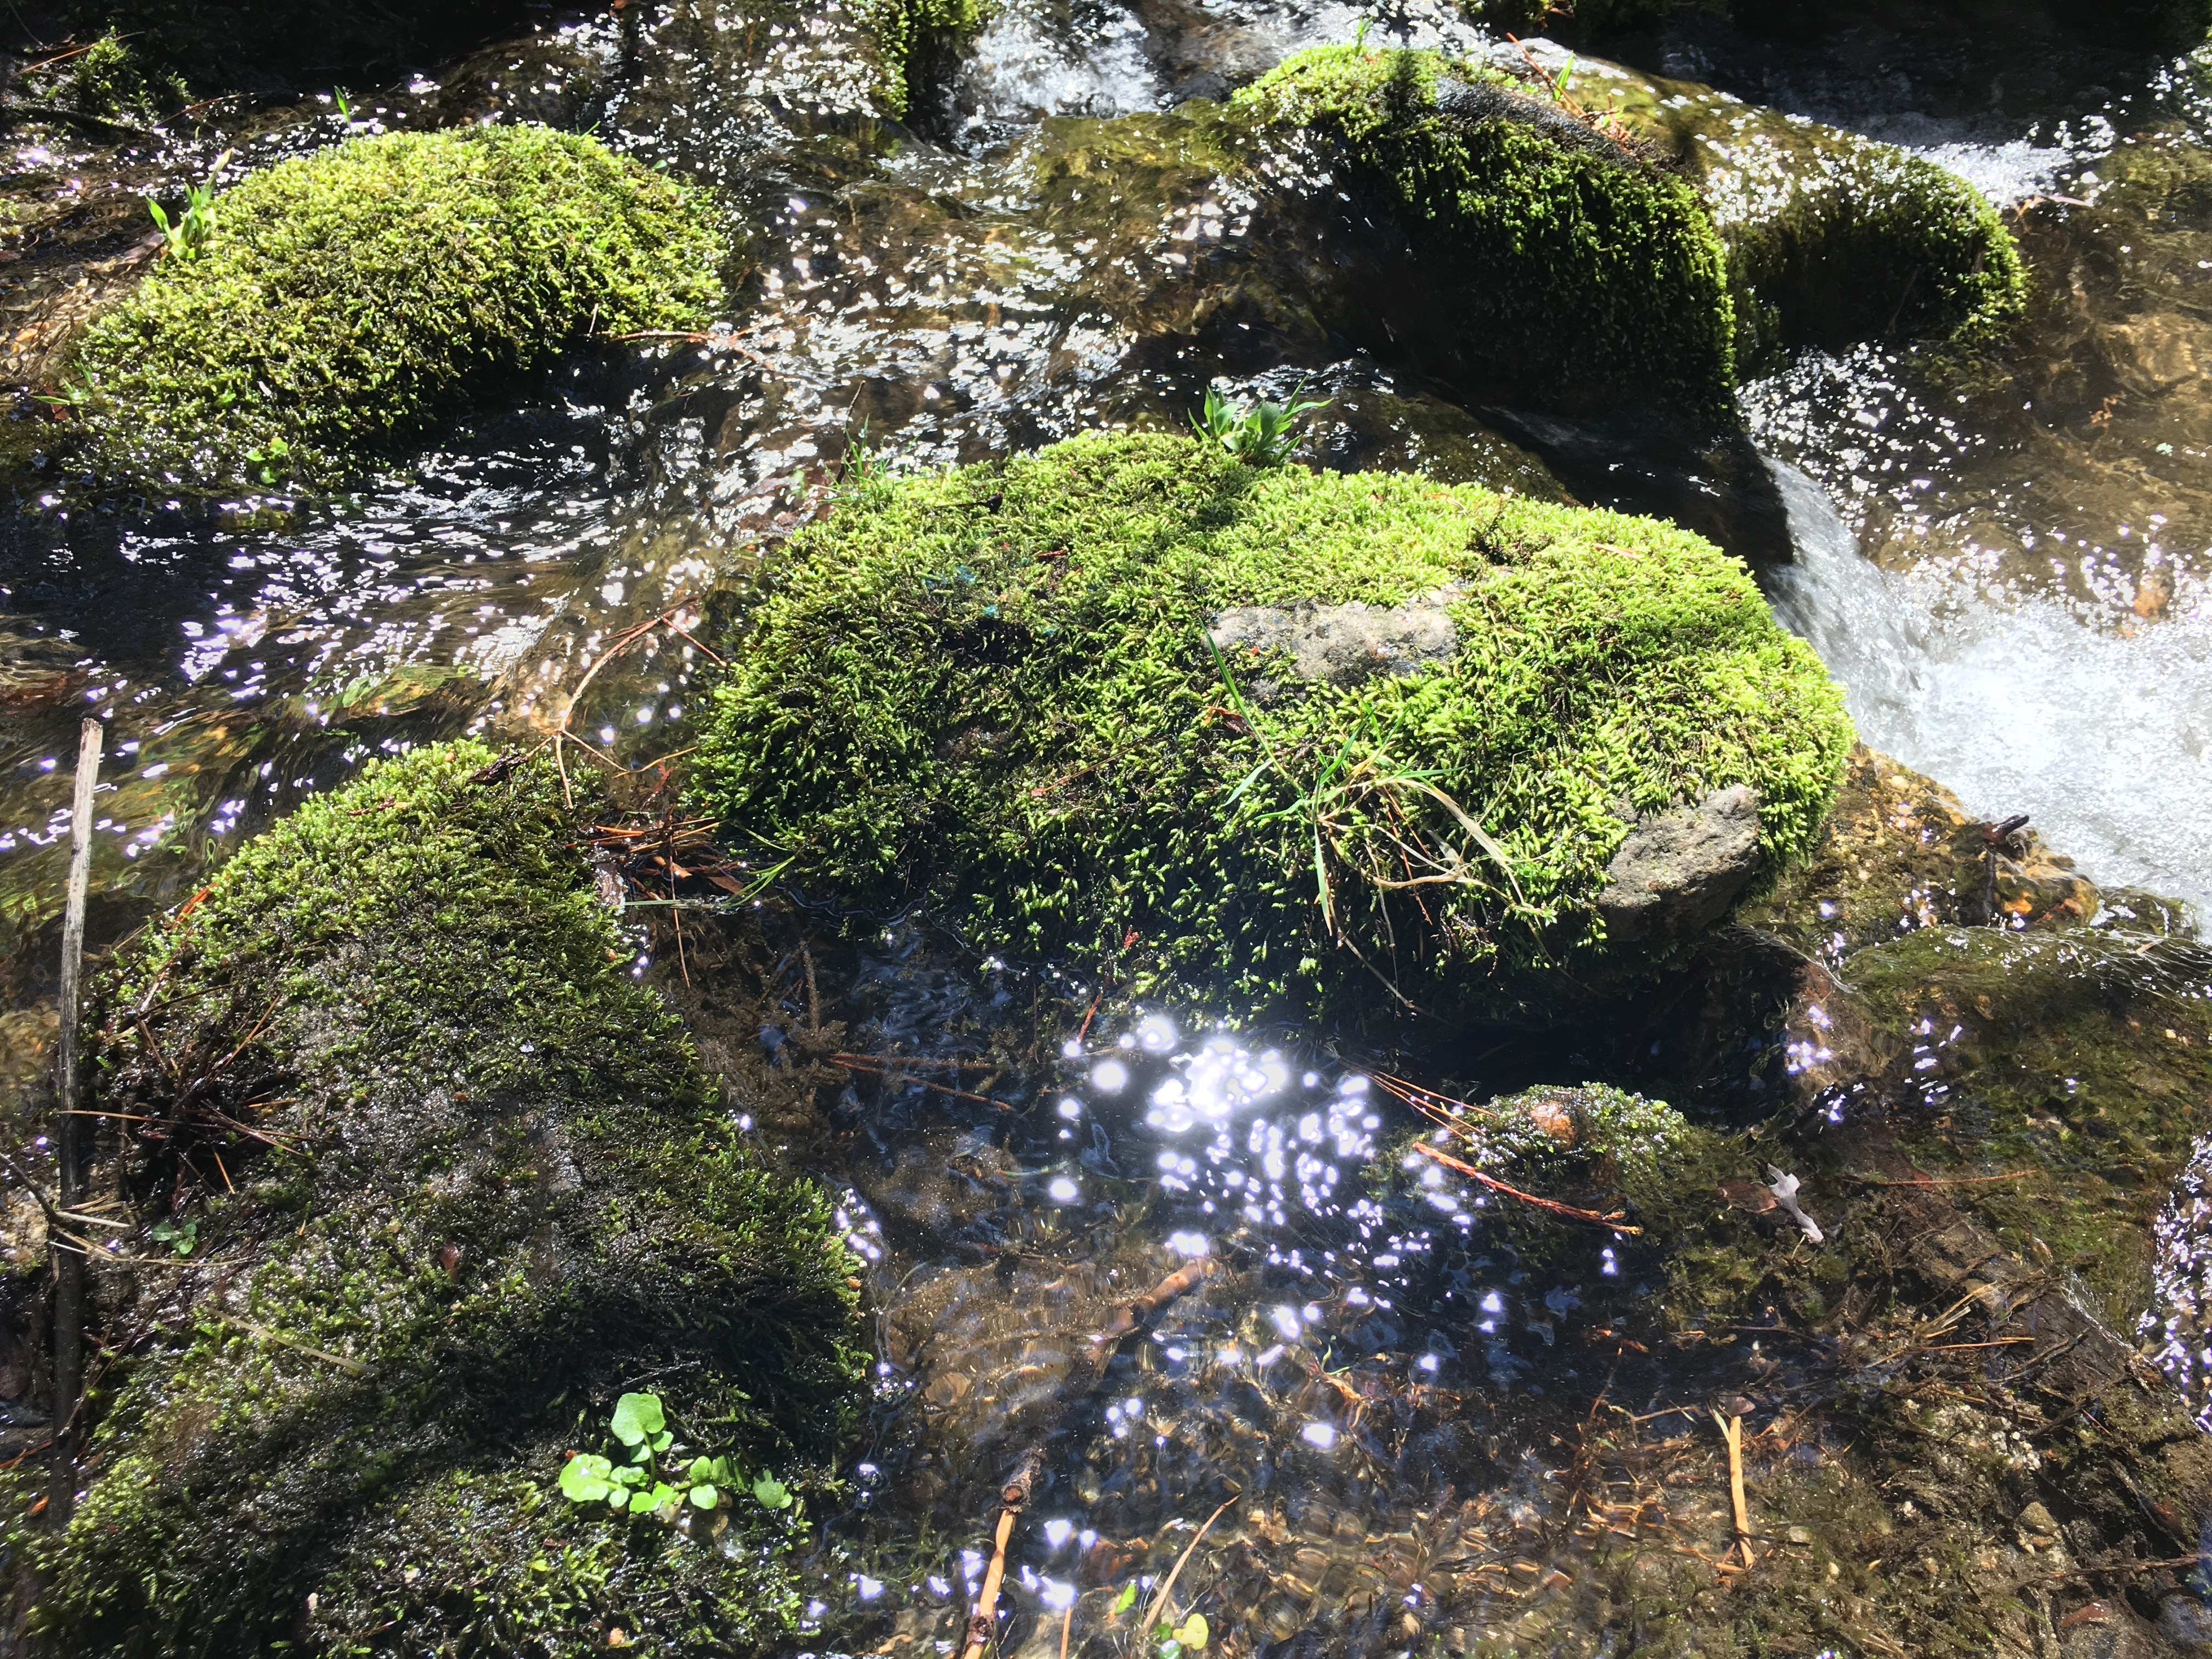 Stream in Sierra's with moss and sunlight